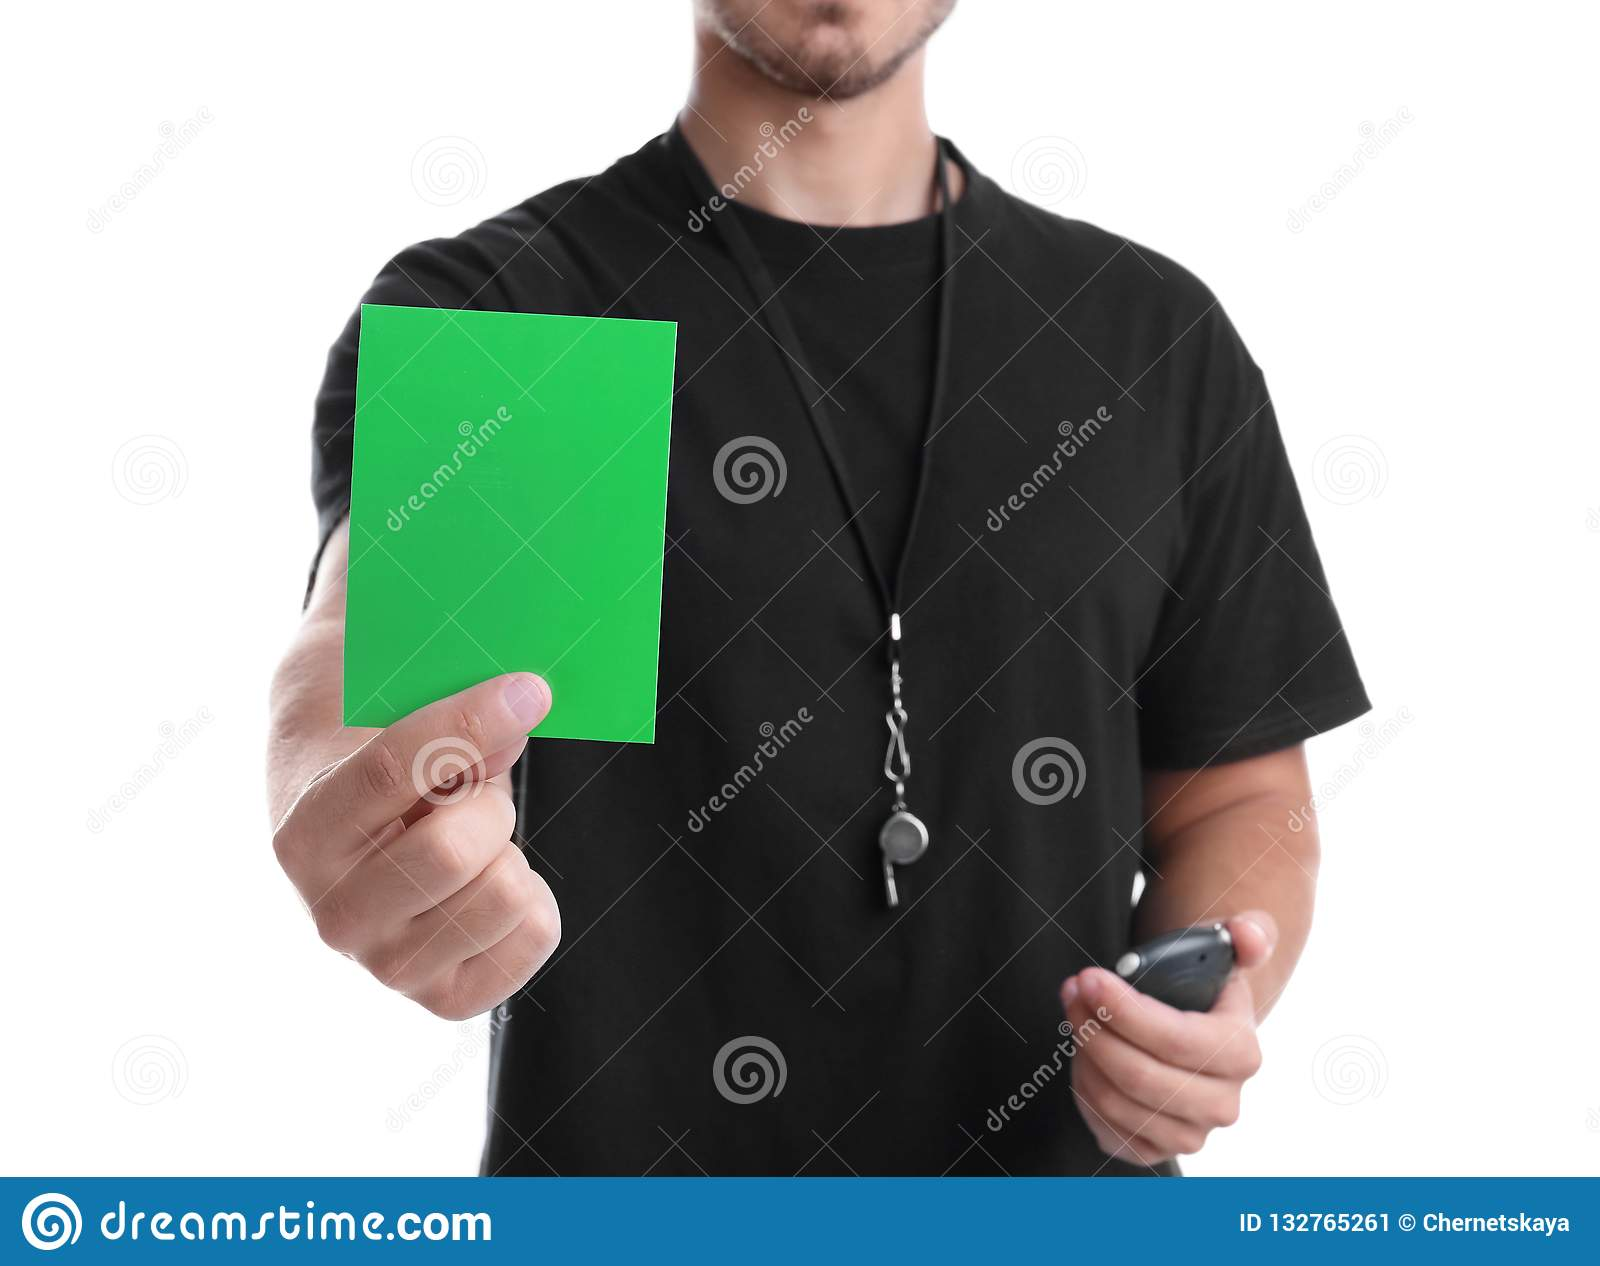 Football referee with stopwatch and whistle holding green card on white background